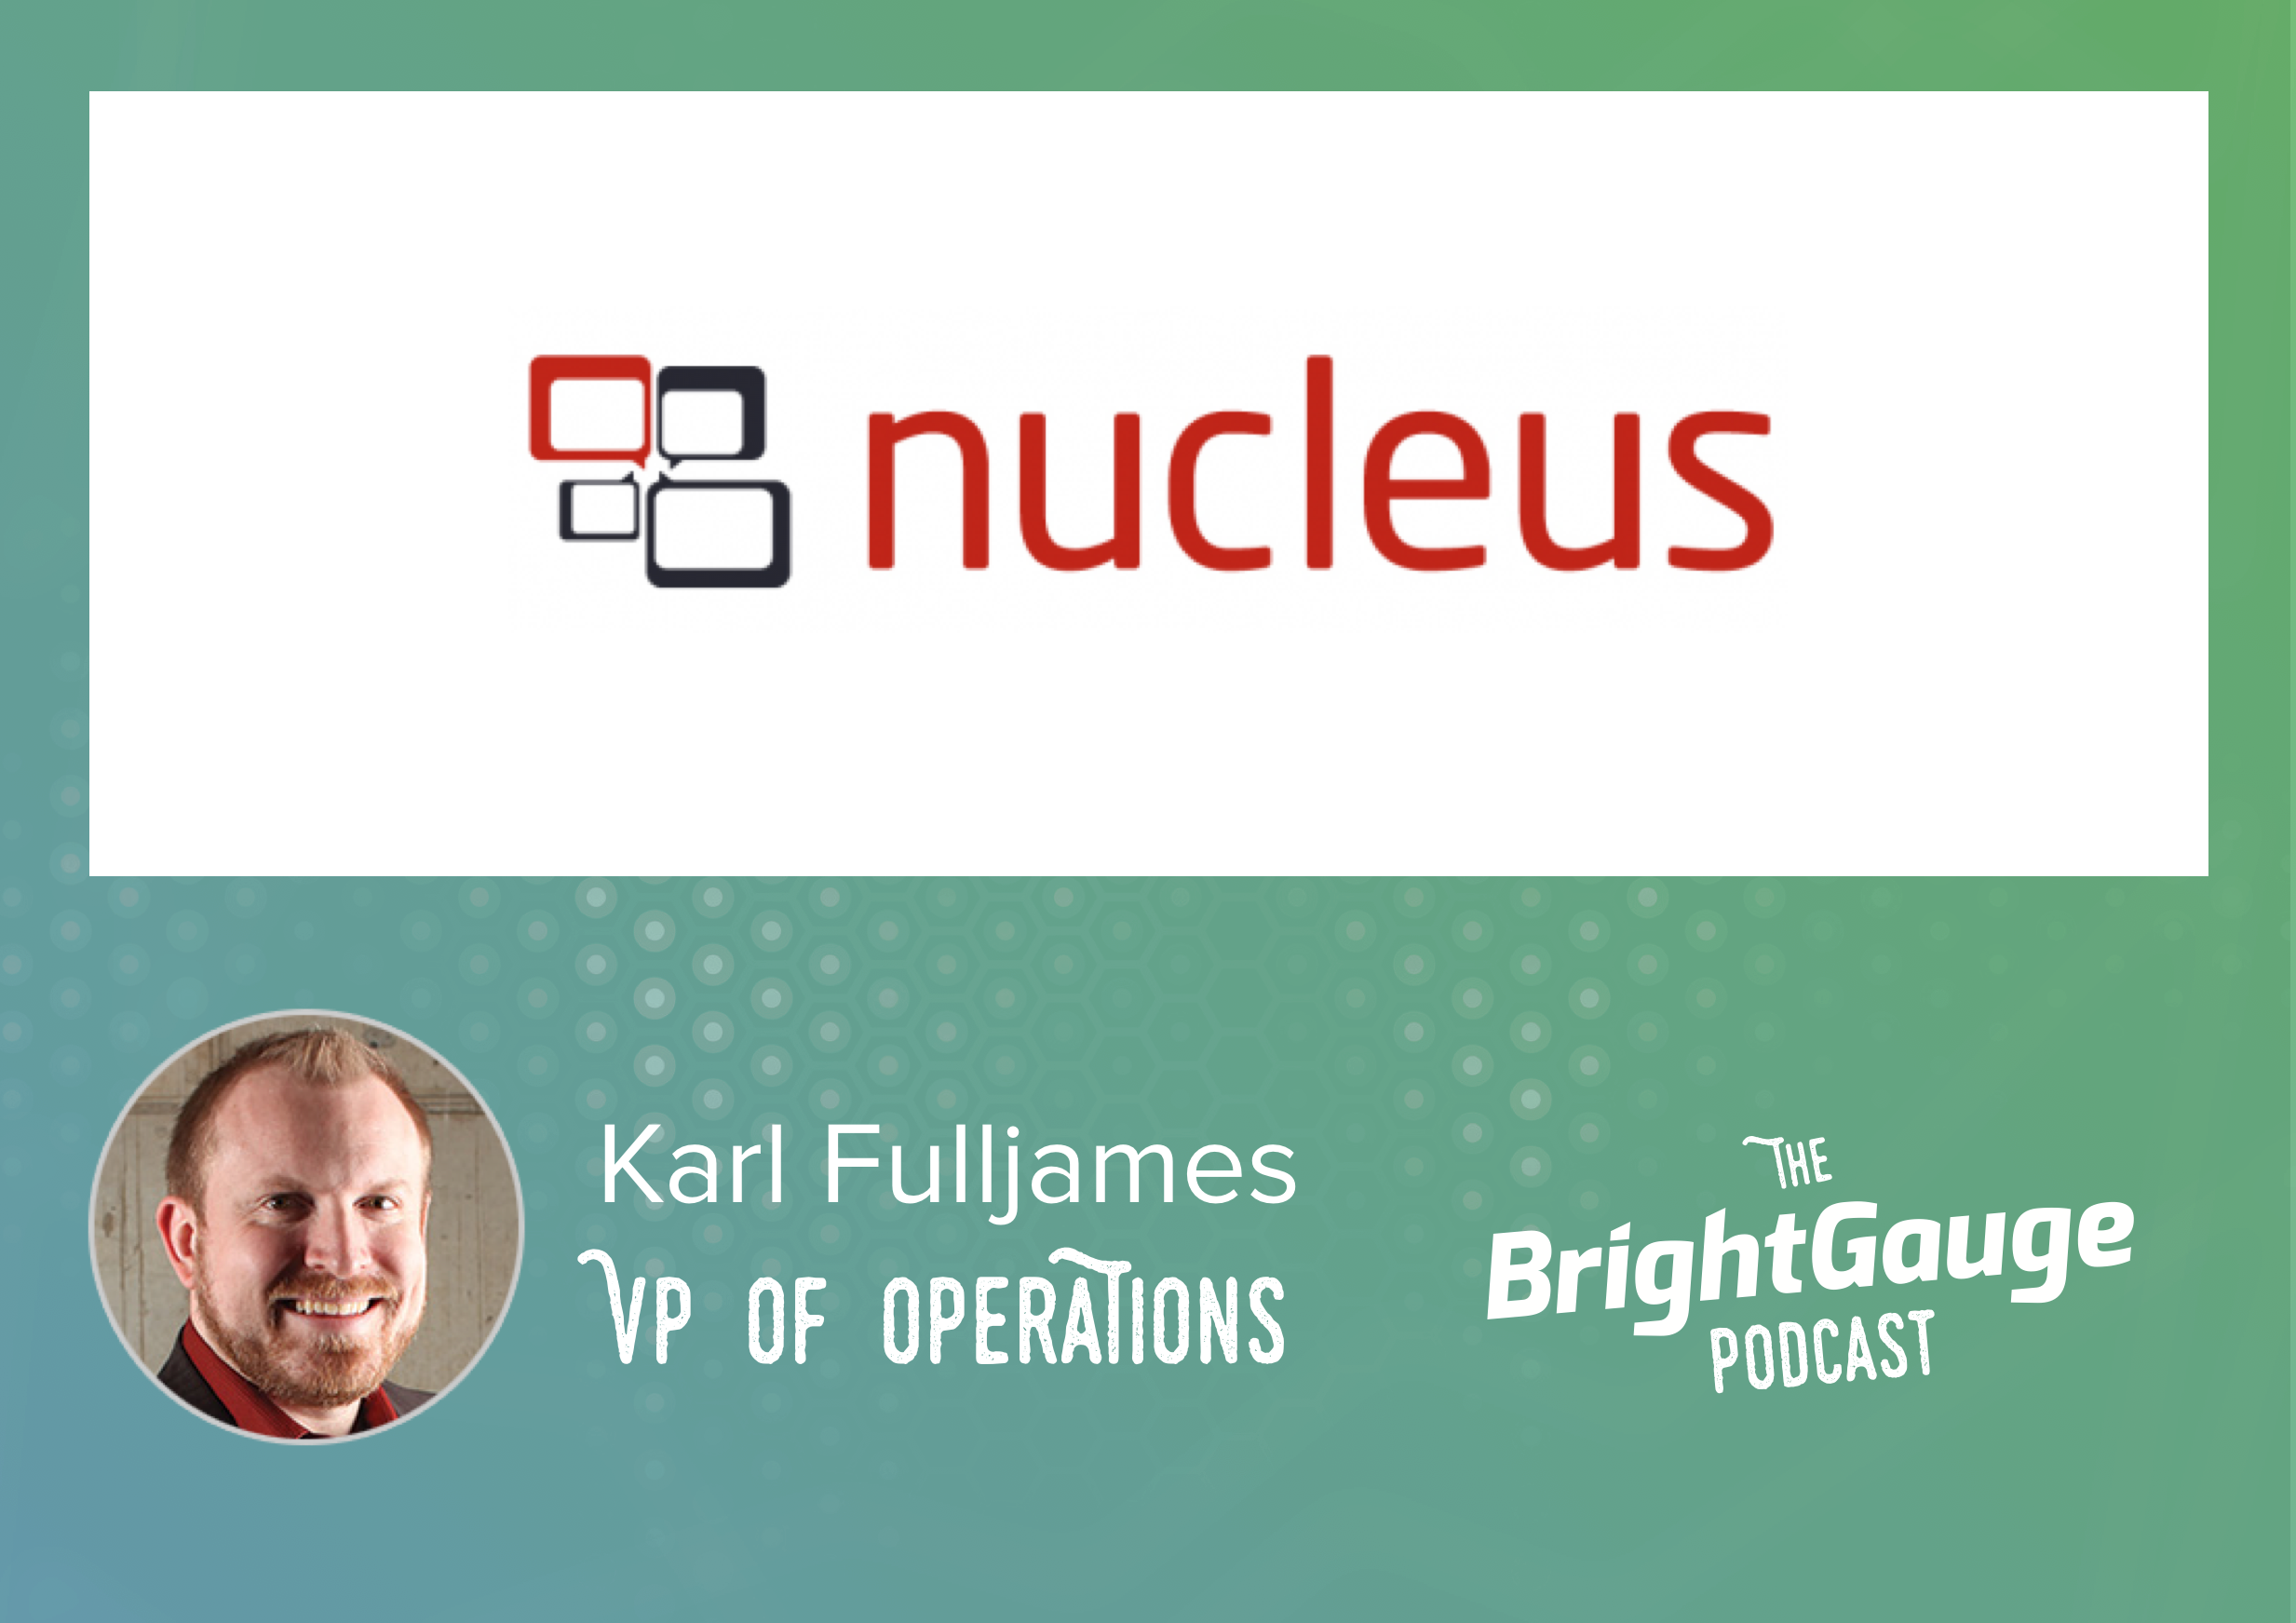 [Podcast] Episode 40 with Karl Fulljames of Nucleus Networks